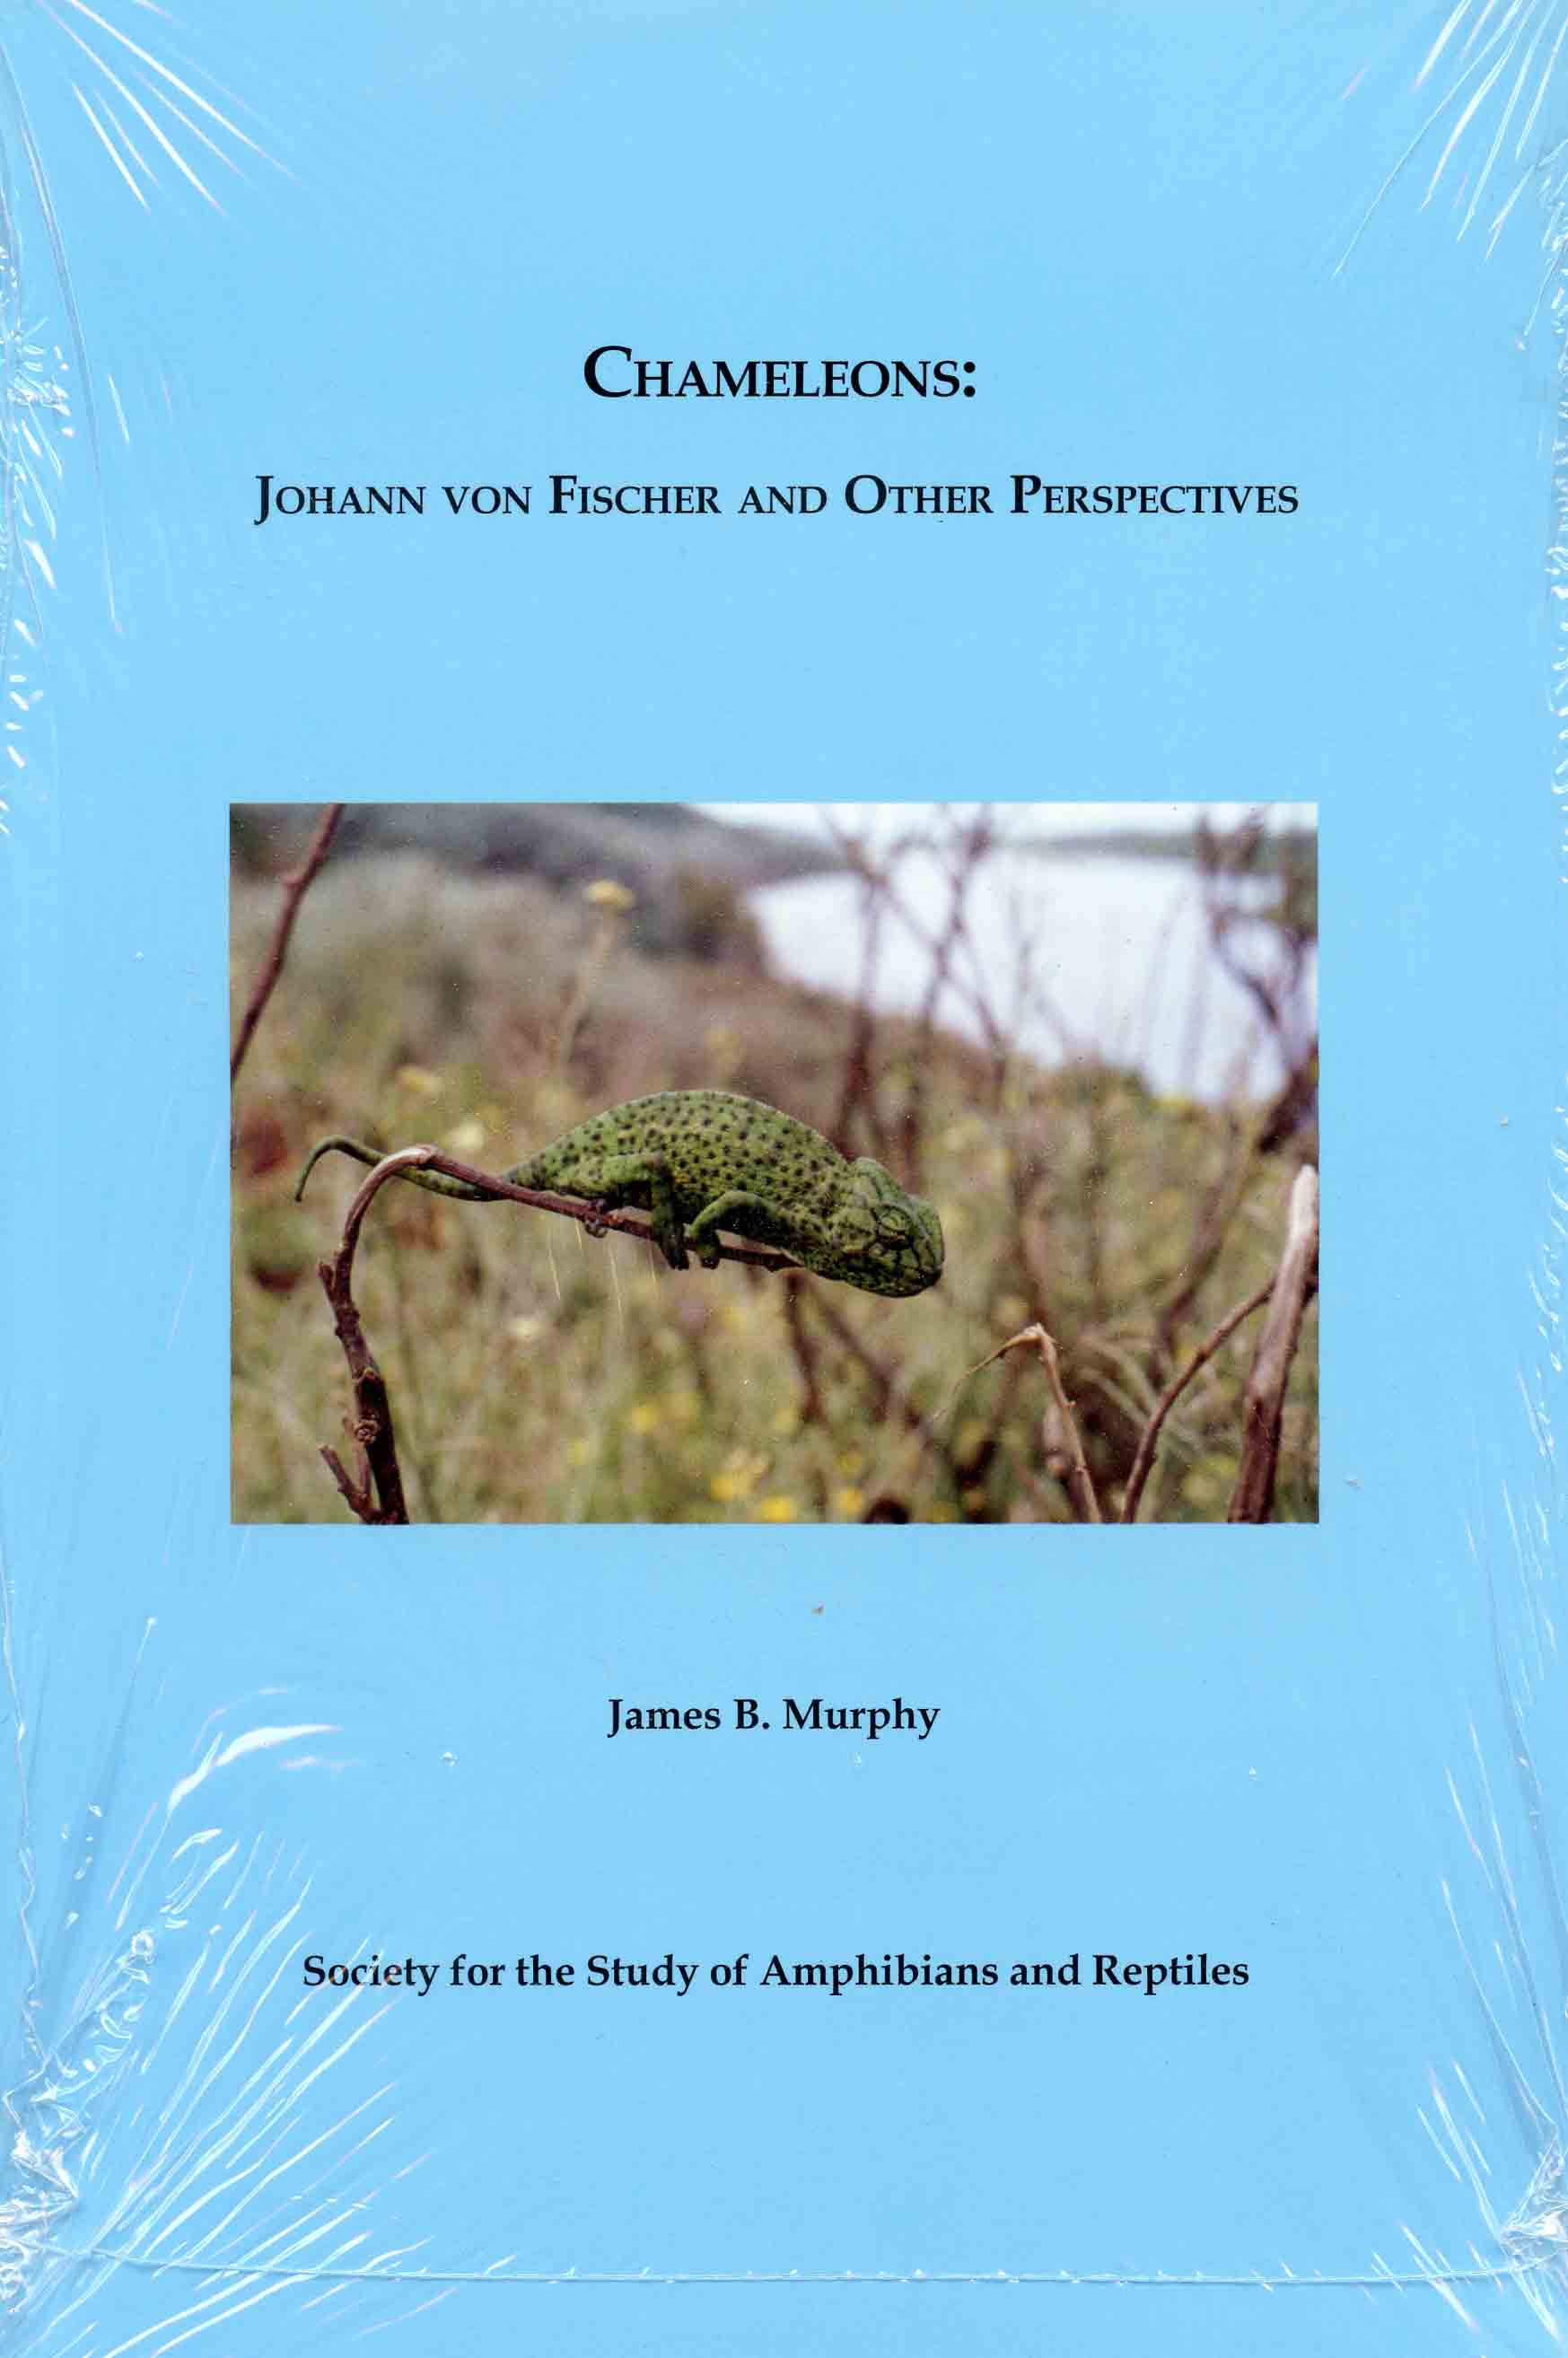 Image for Chameleons: Johann von Fischer and Other Perspectives,